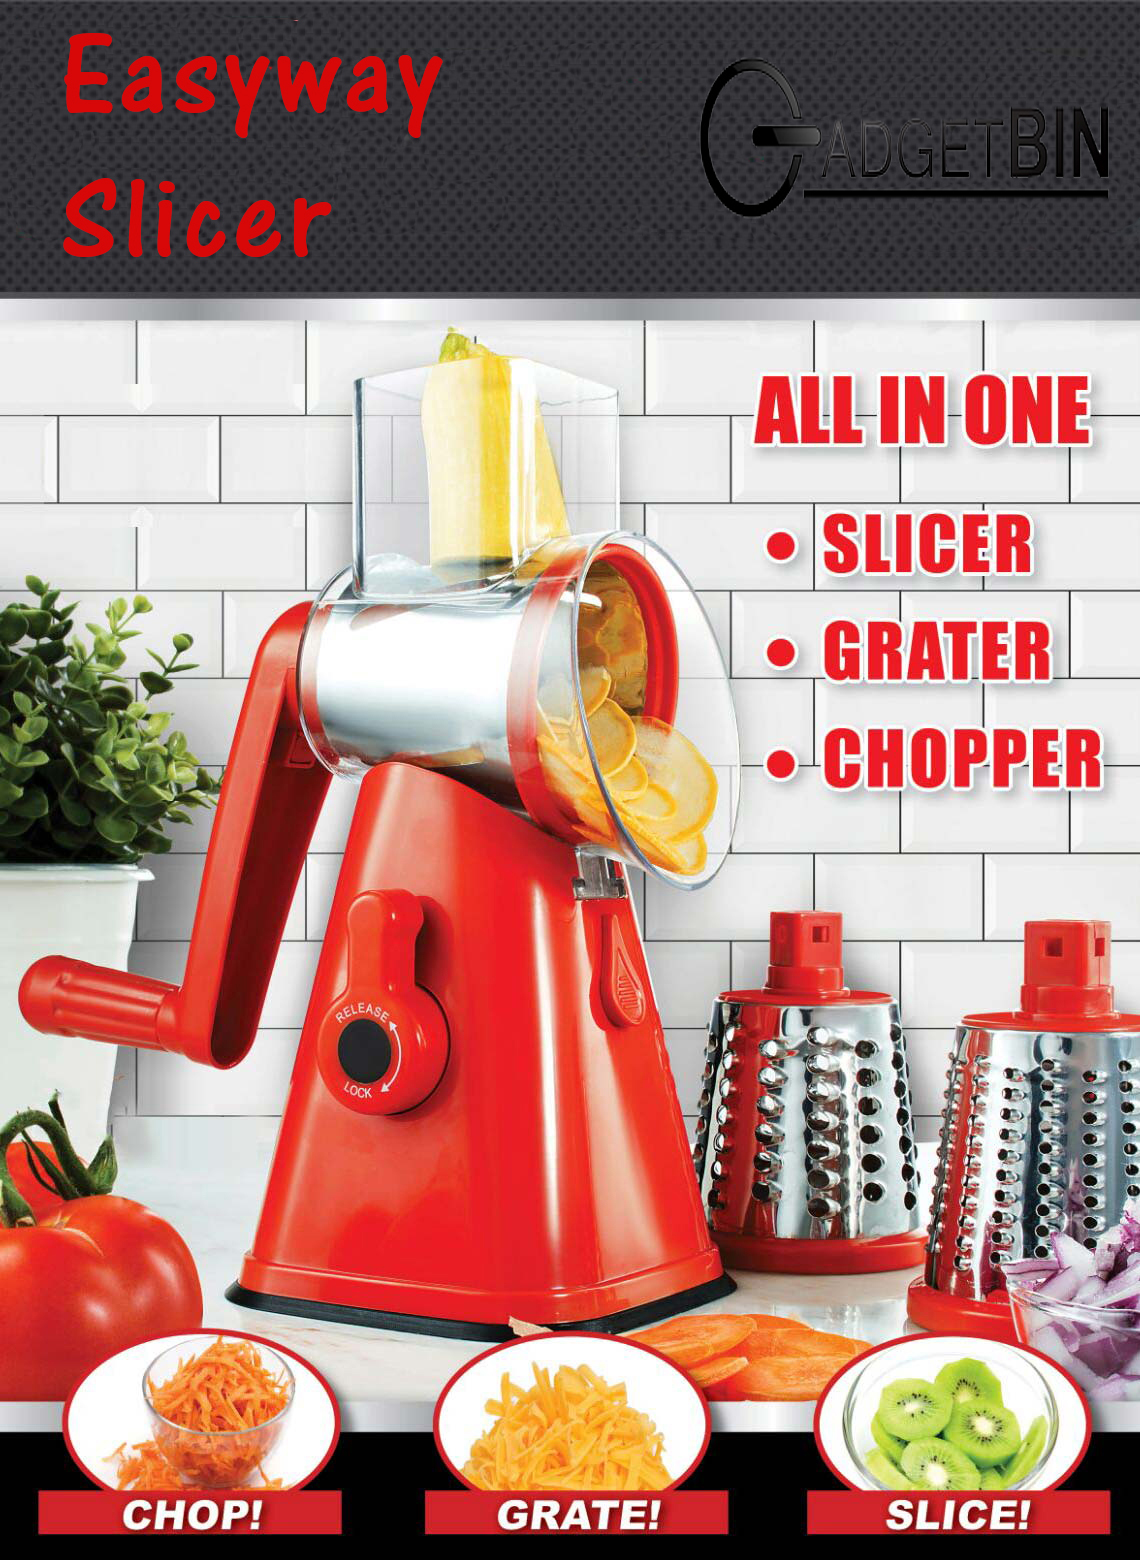 Easyway Slicer 3 in 1 Spinning/Rotating Countertop Food Slicer, Chopper, and Grater